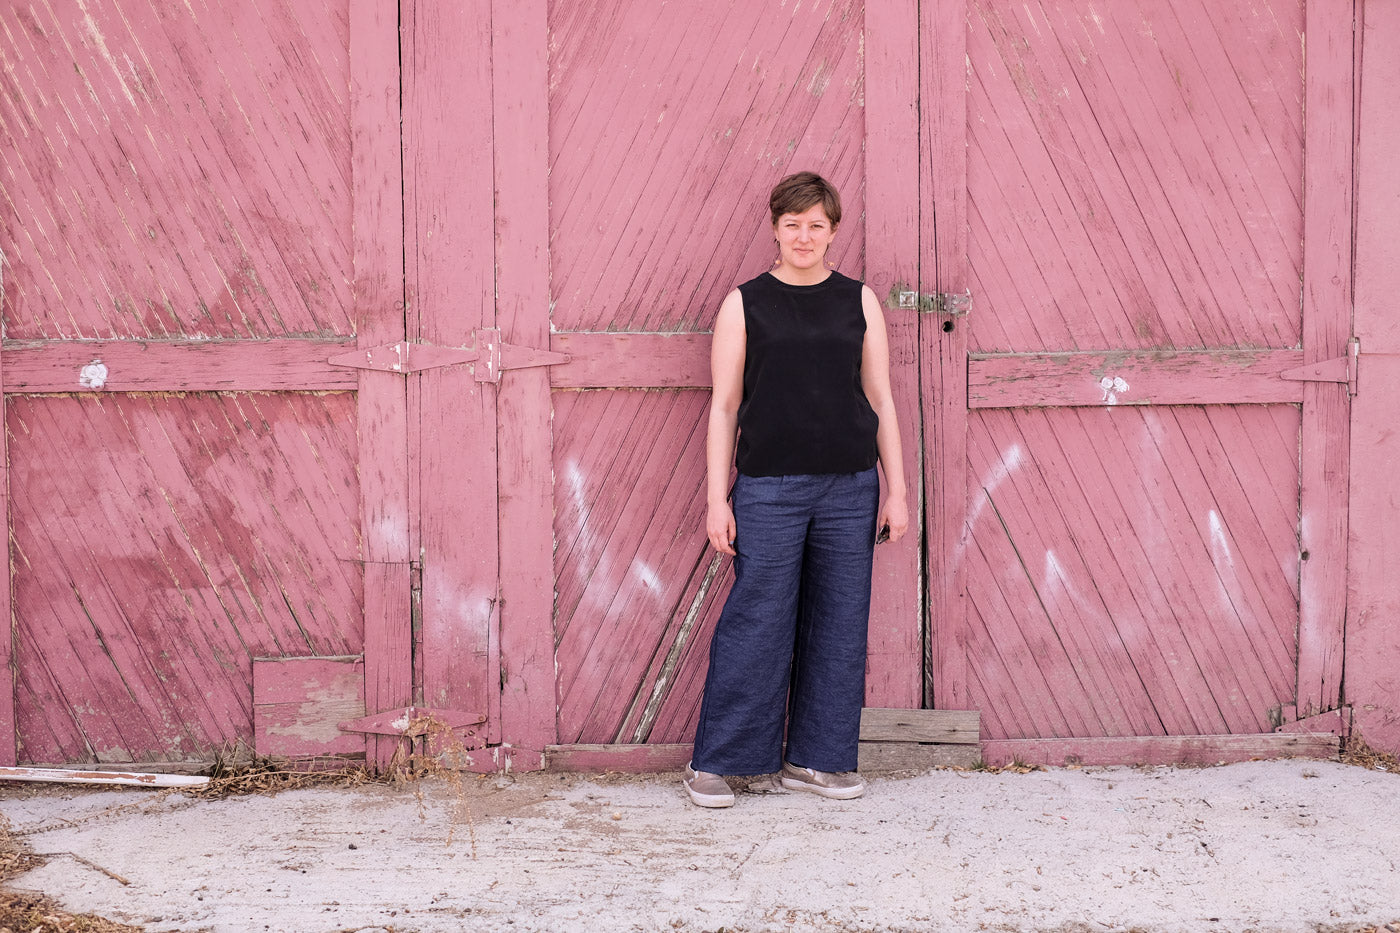 Lucy wearing her indigo linen trousers, she stands in front of a weathered barn door.